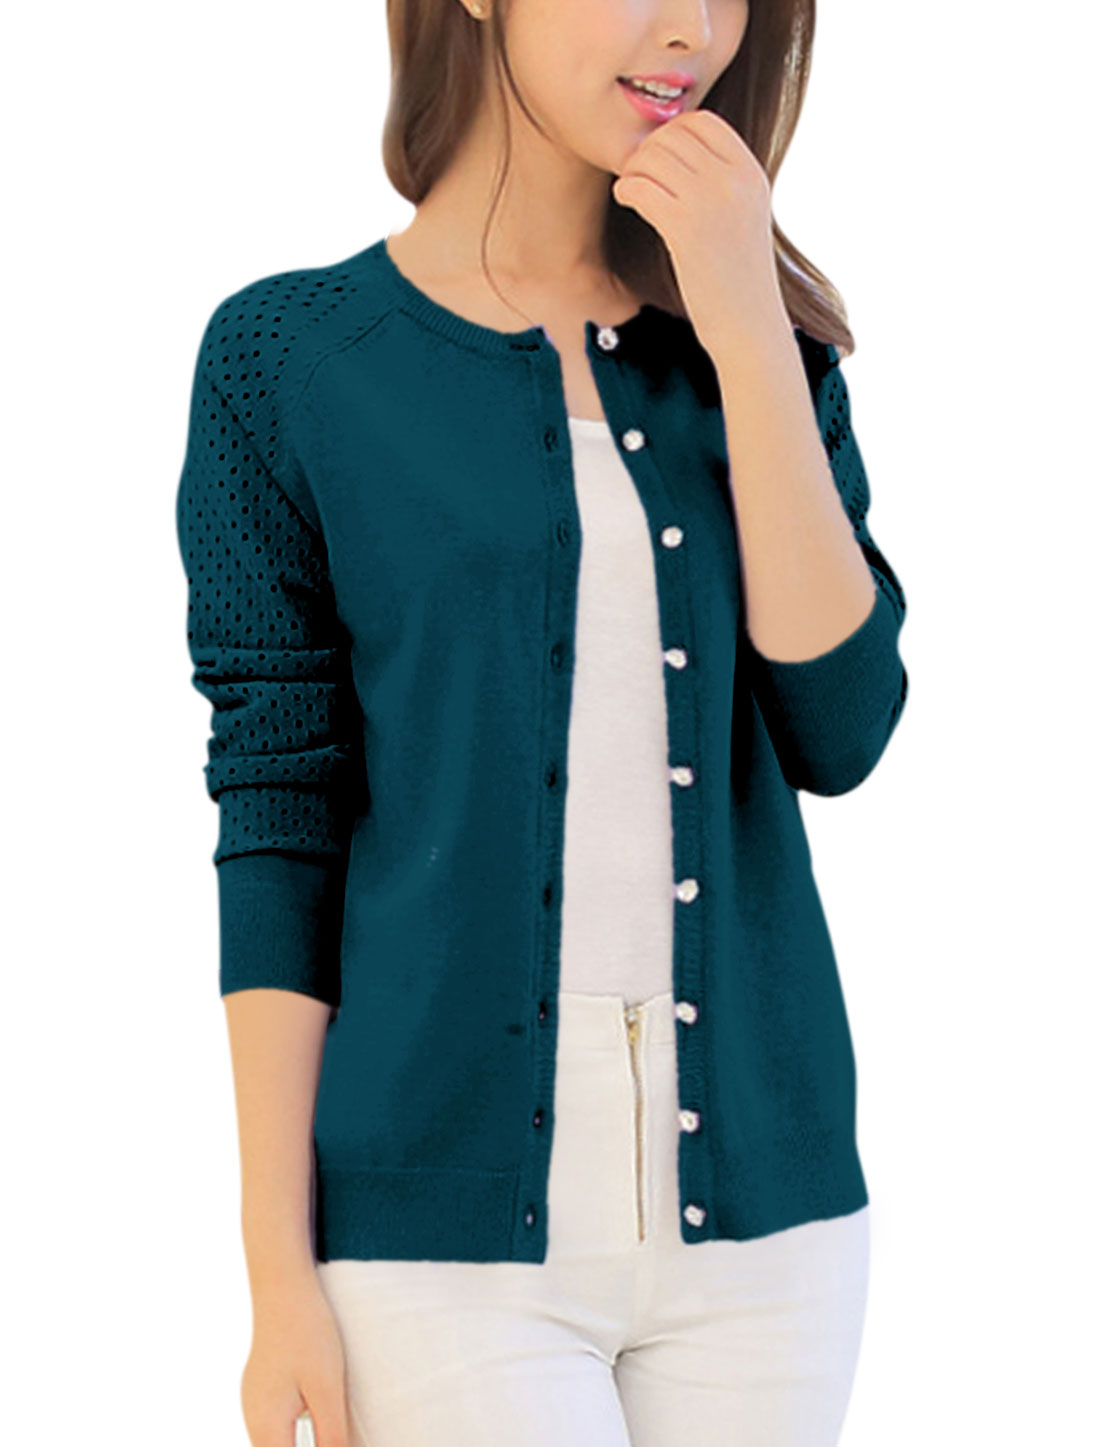 Lady Long Sleeve Button Closure Hollow Out Knit Cardigan Peacock Blue XS